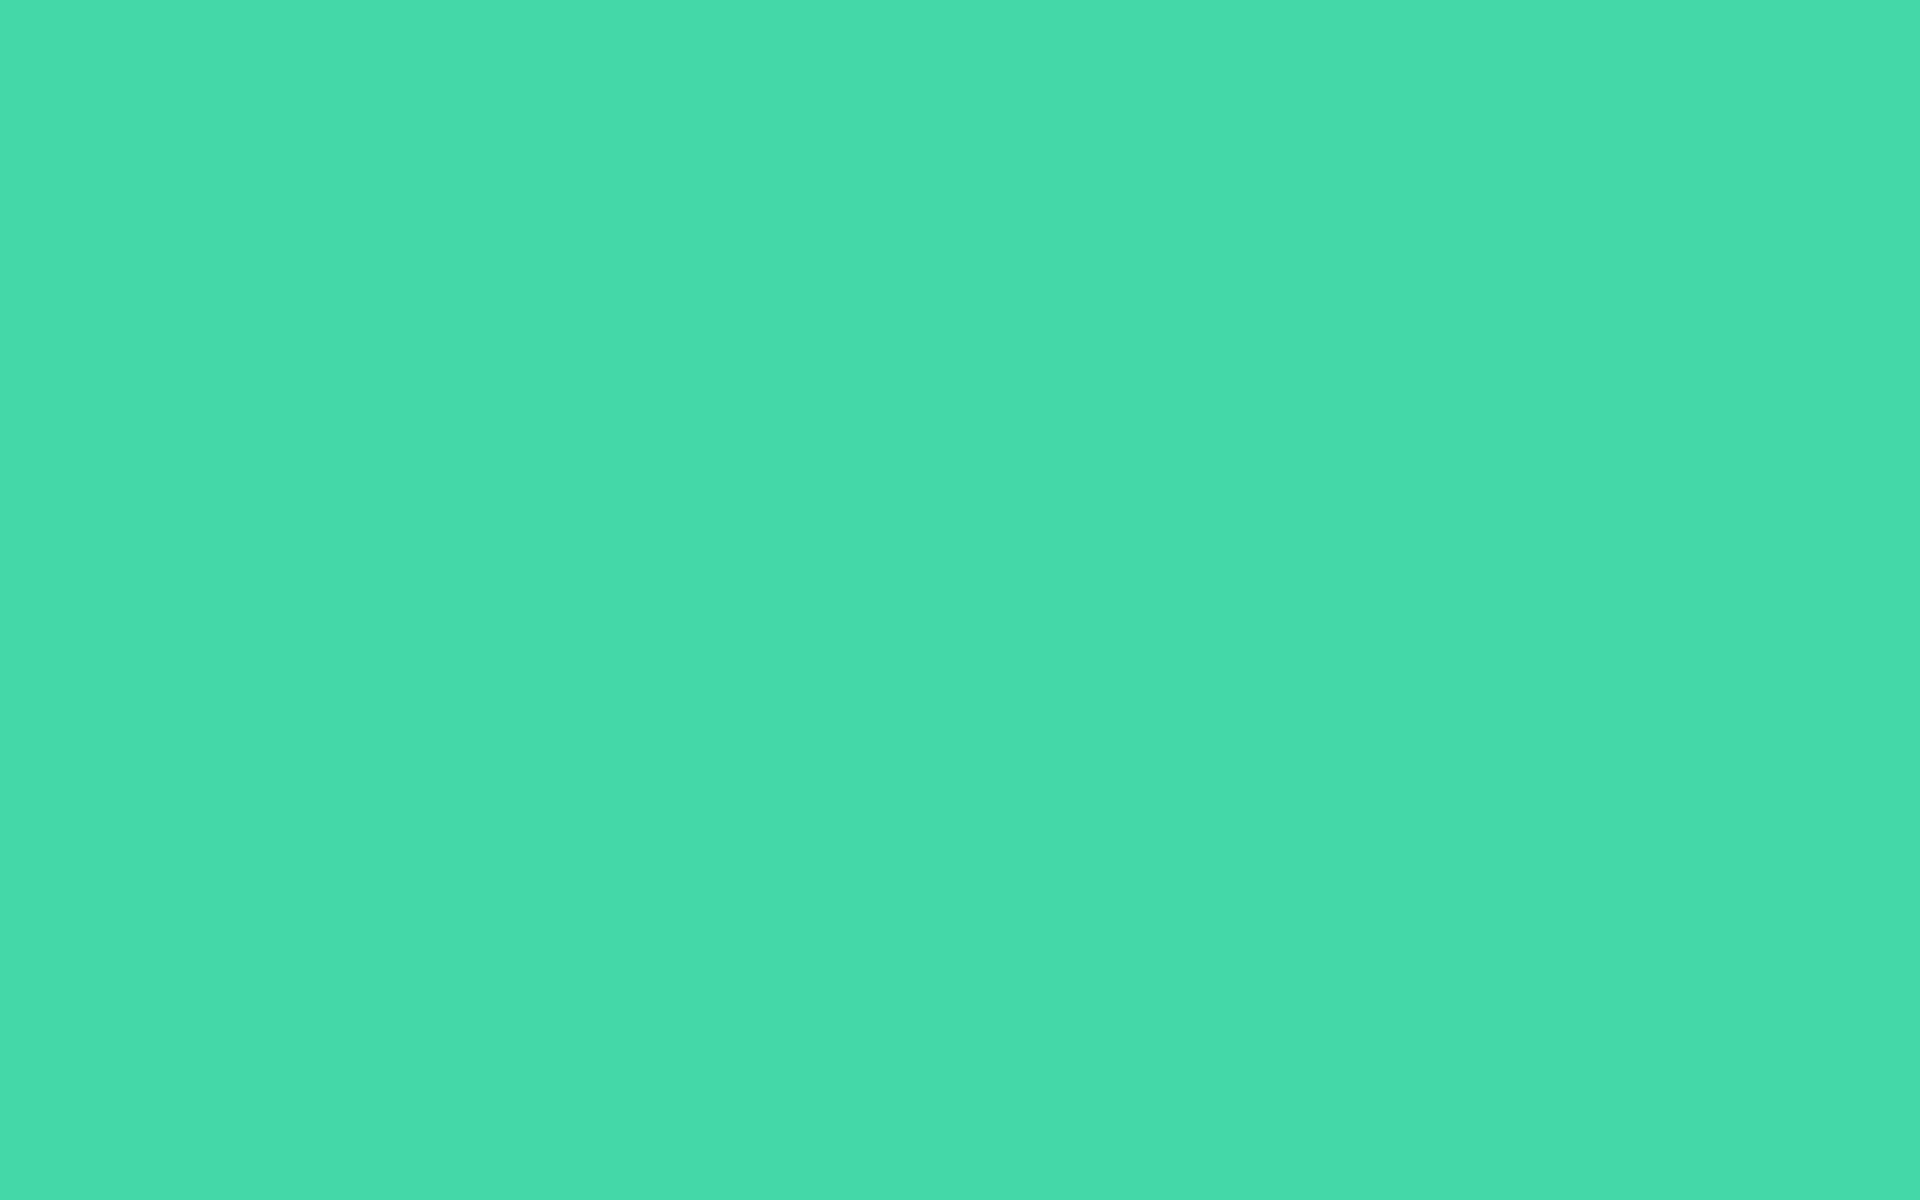 1920x1200 Eucalyptus Solid Color Background